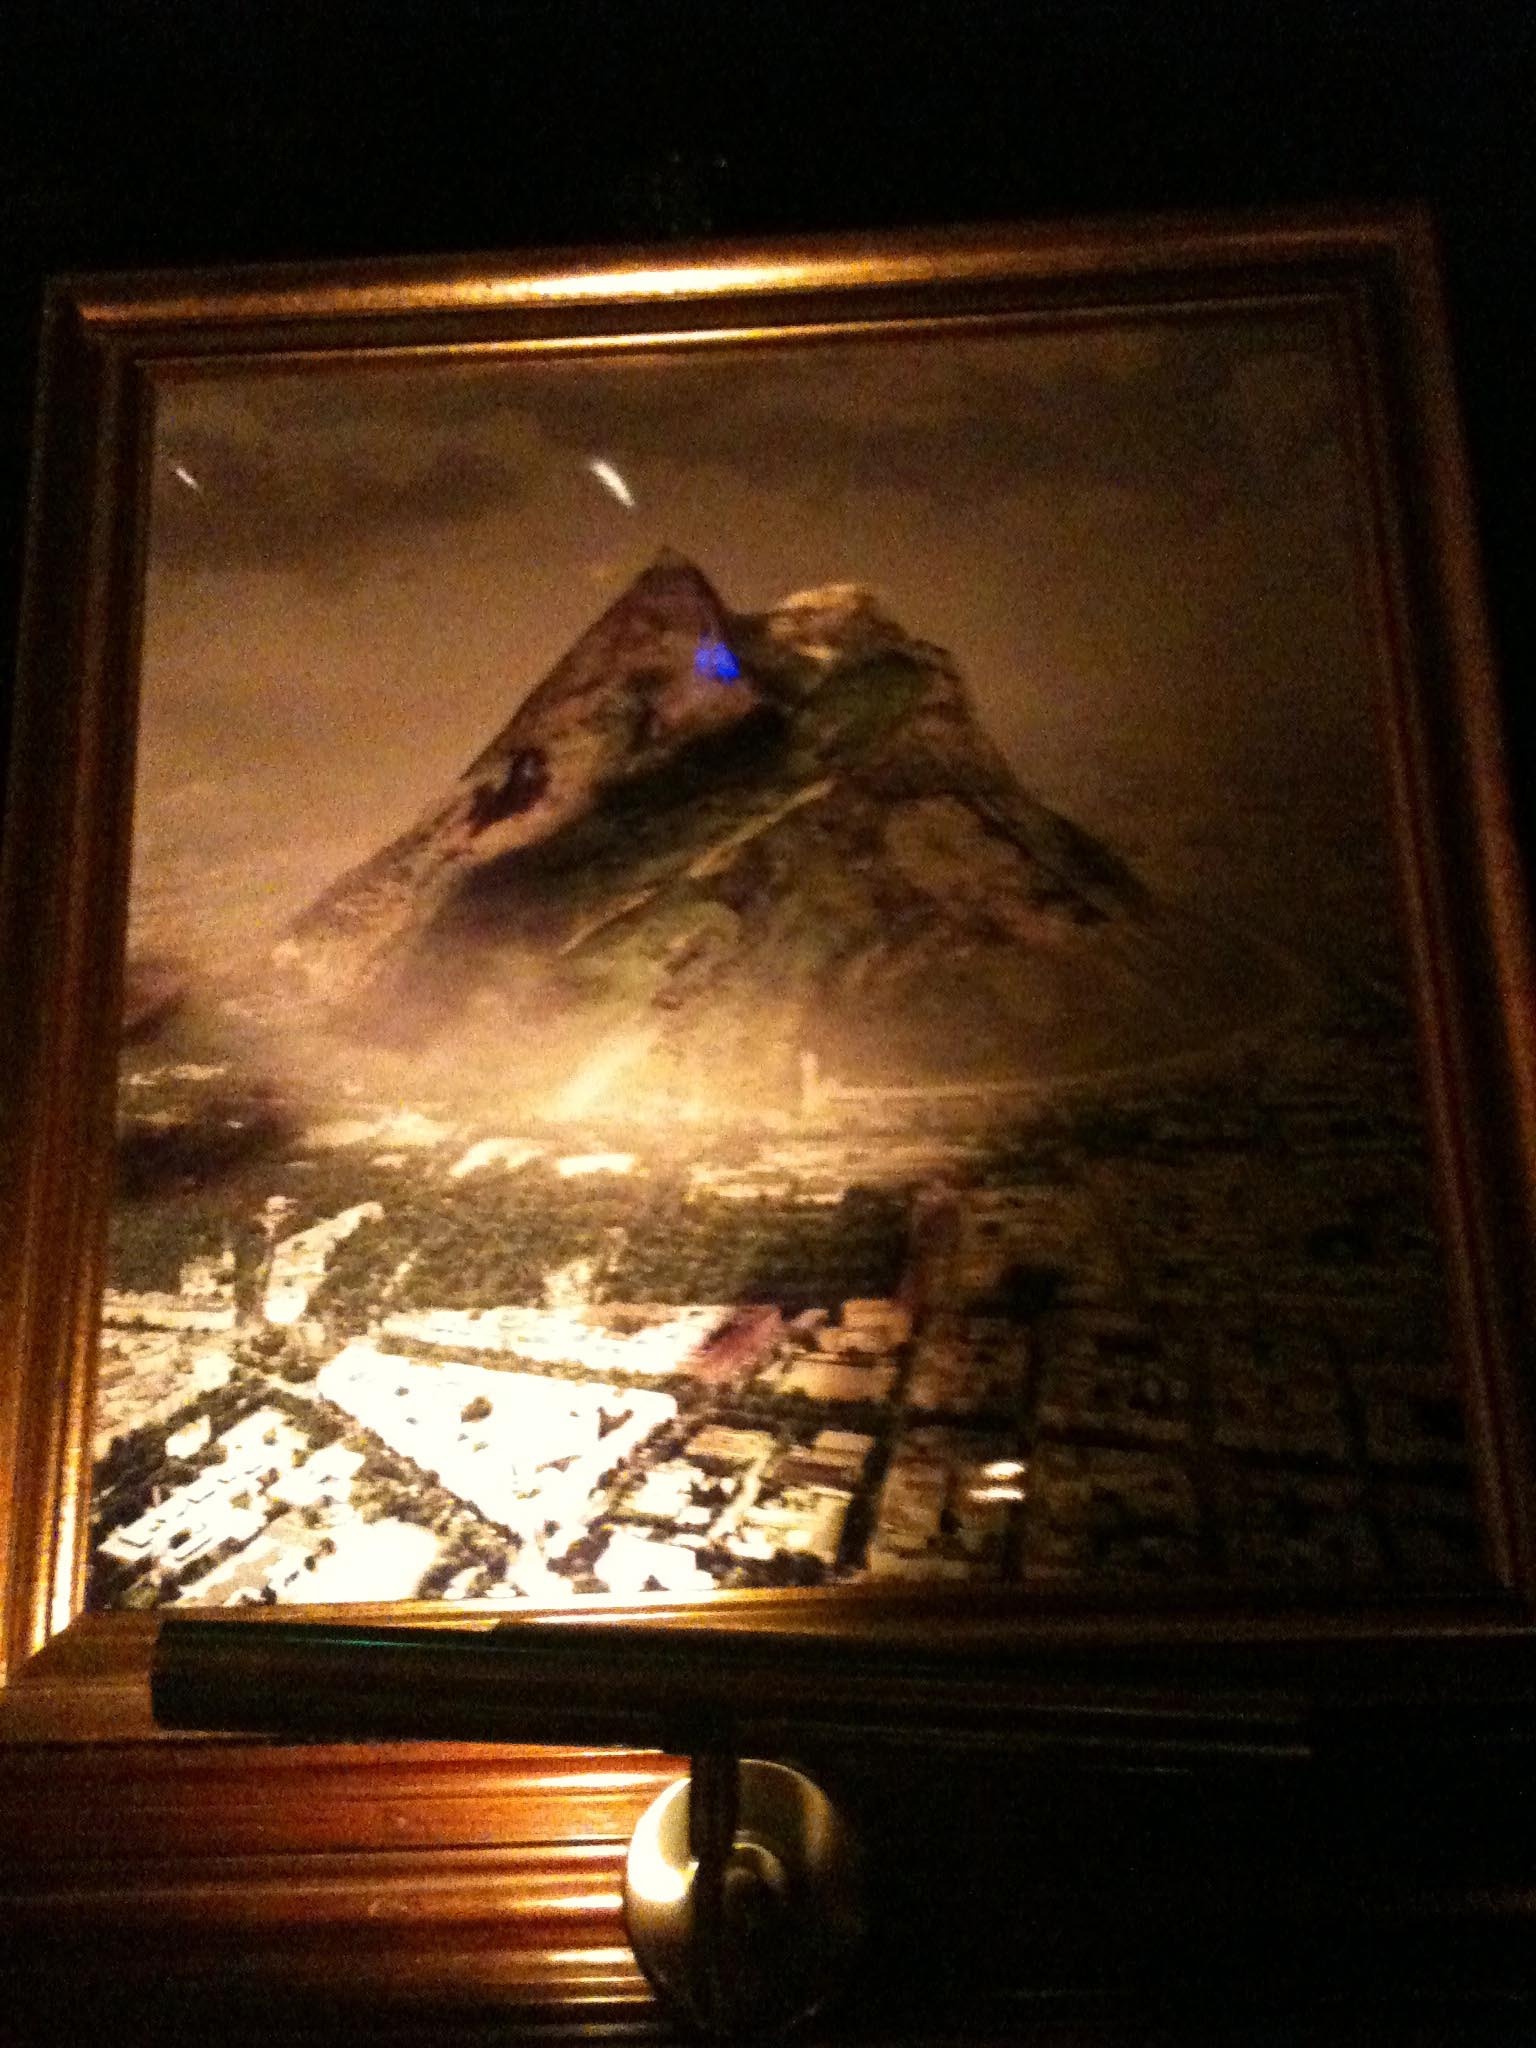 A picture of the proposed Tempelhofer Berg (Tempelhof Mountain) at White Trash Fast Food